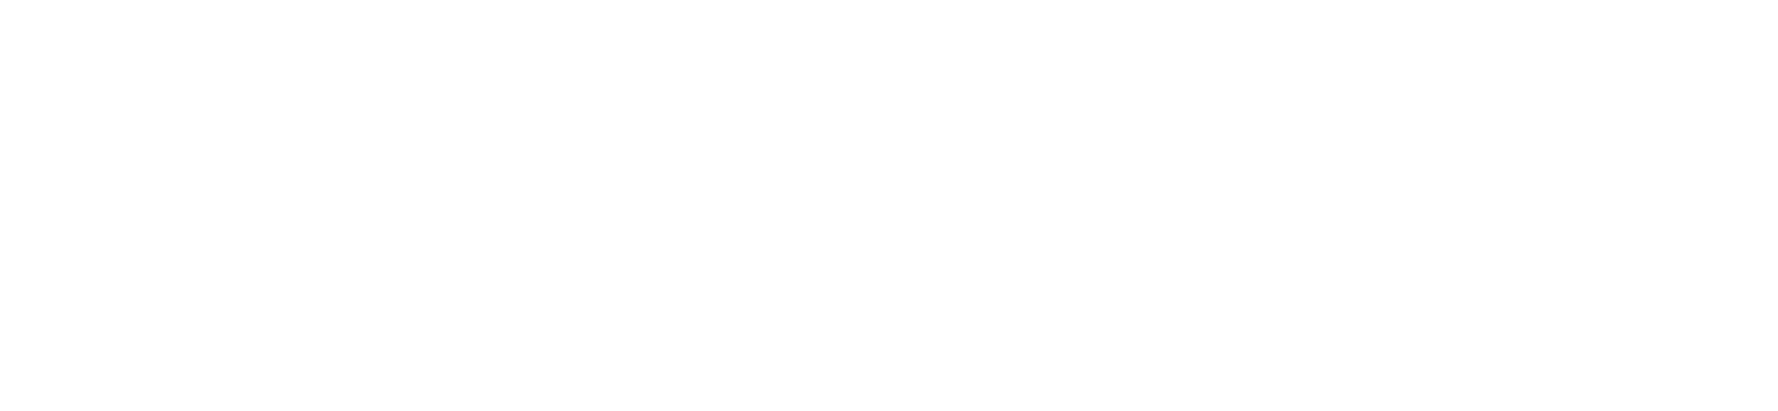 Fundsquare negative logo